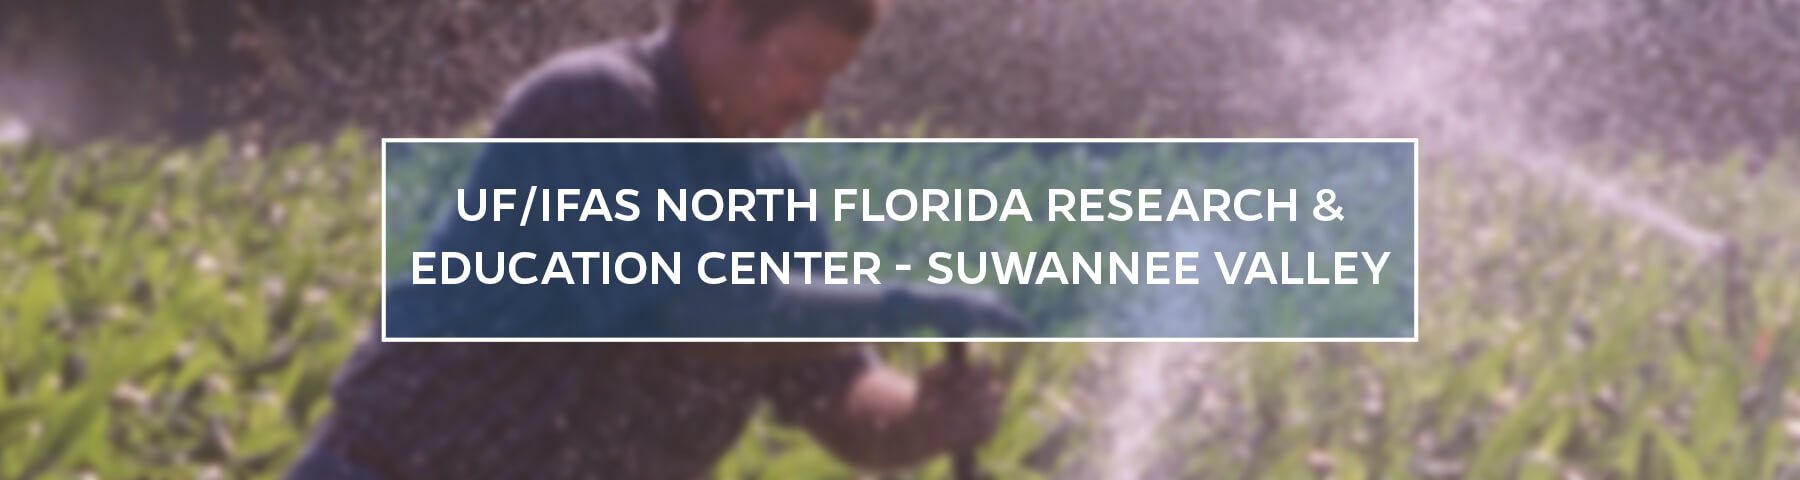 UF/IFAS North Florida Research and Education Center - Suwannee Valley